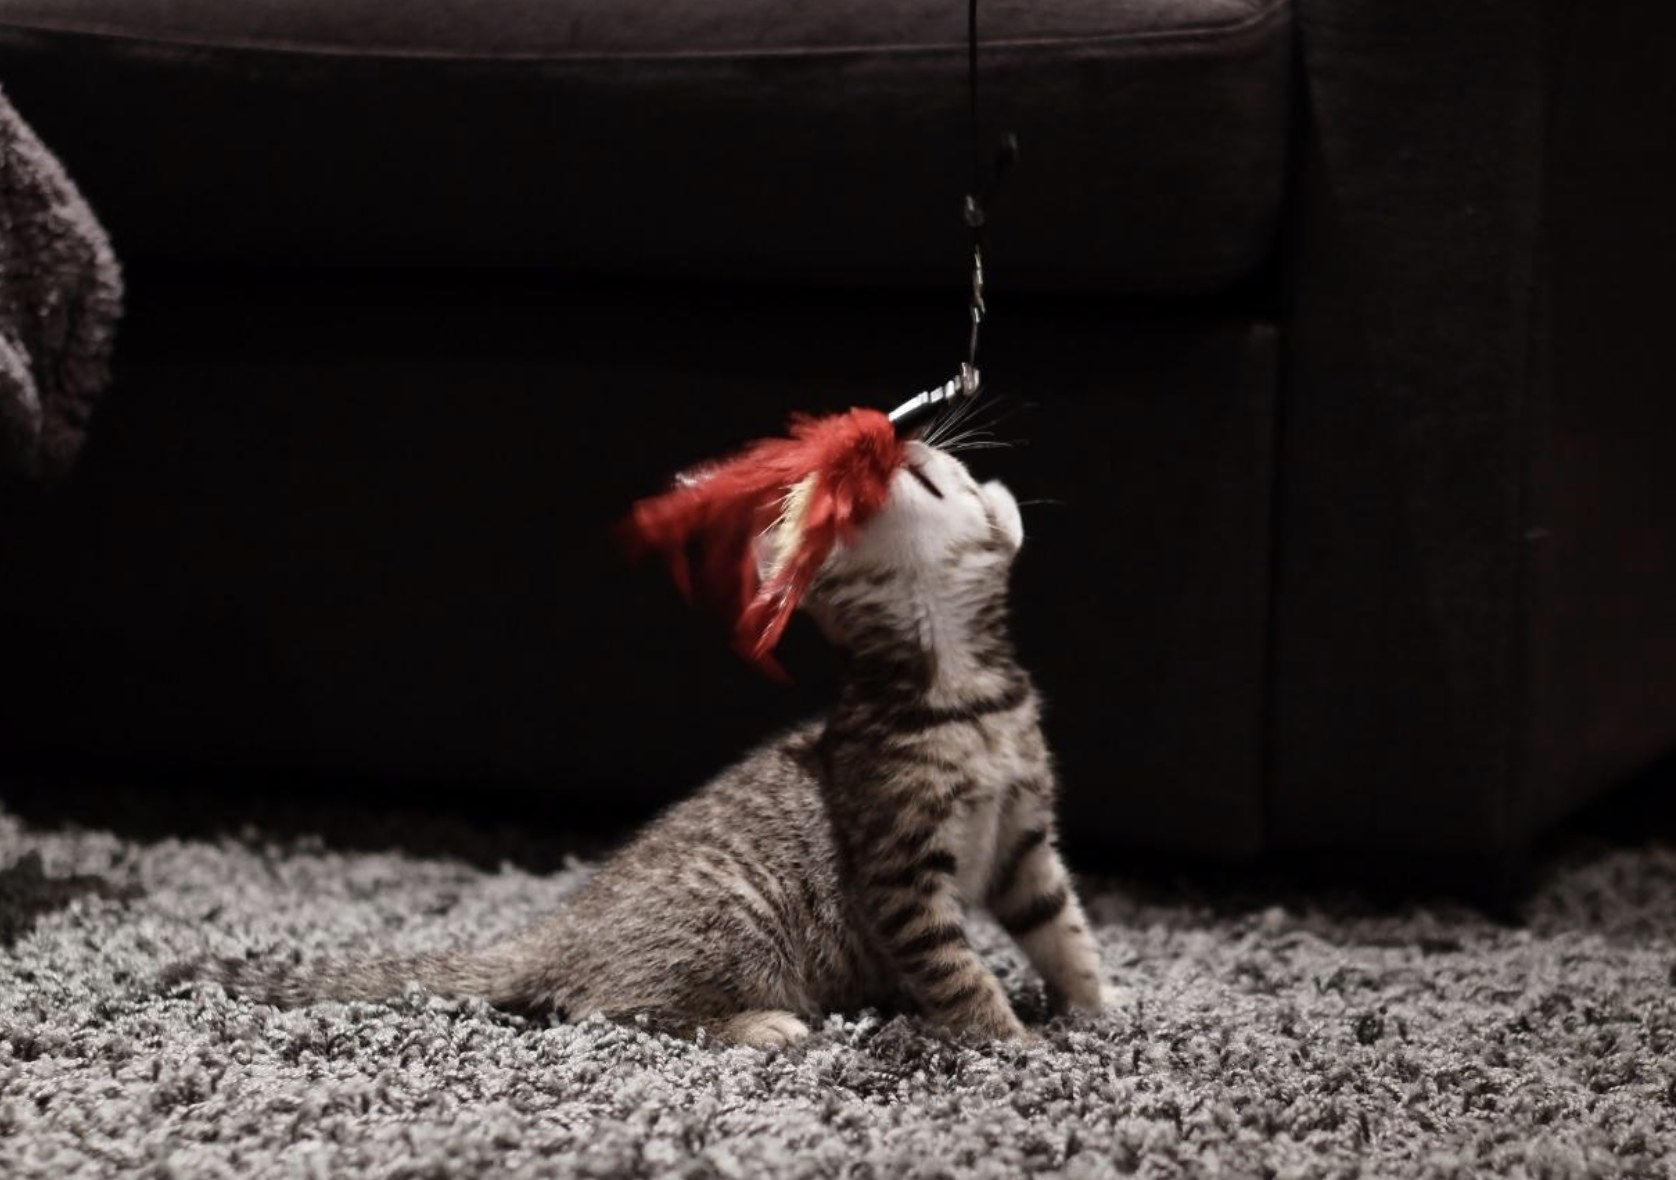 a kitten playing with a red feather attached to a wand